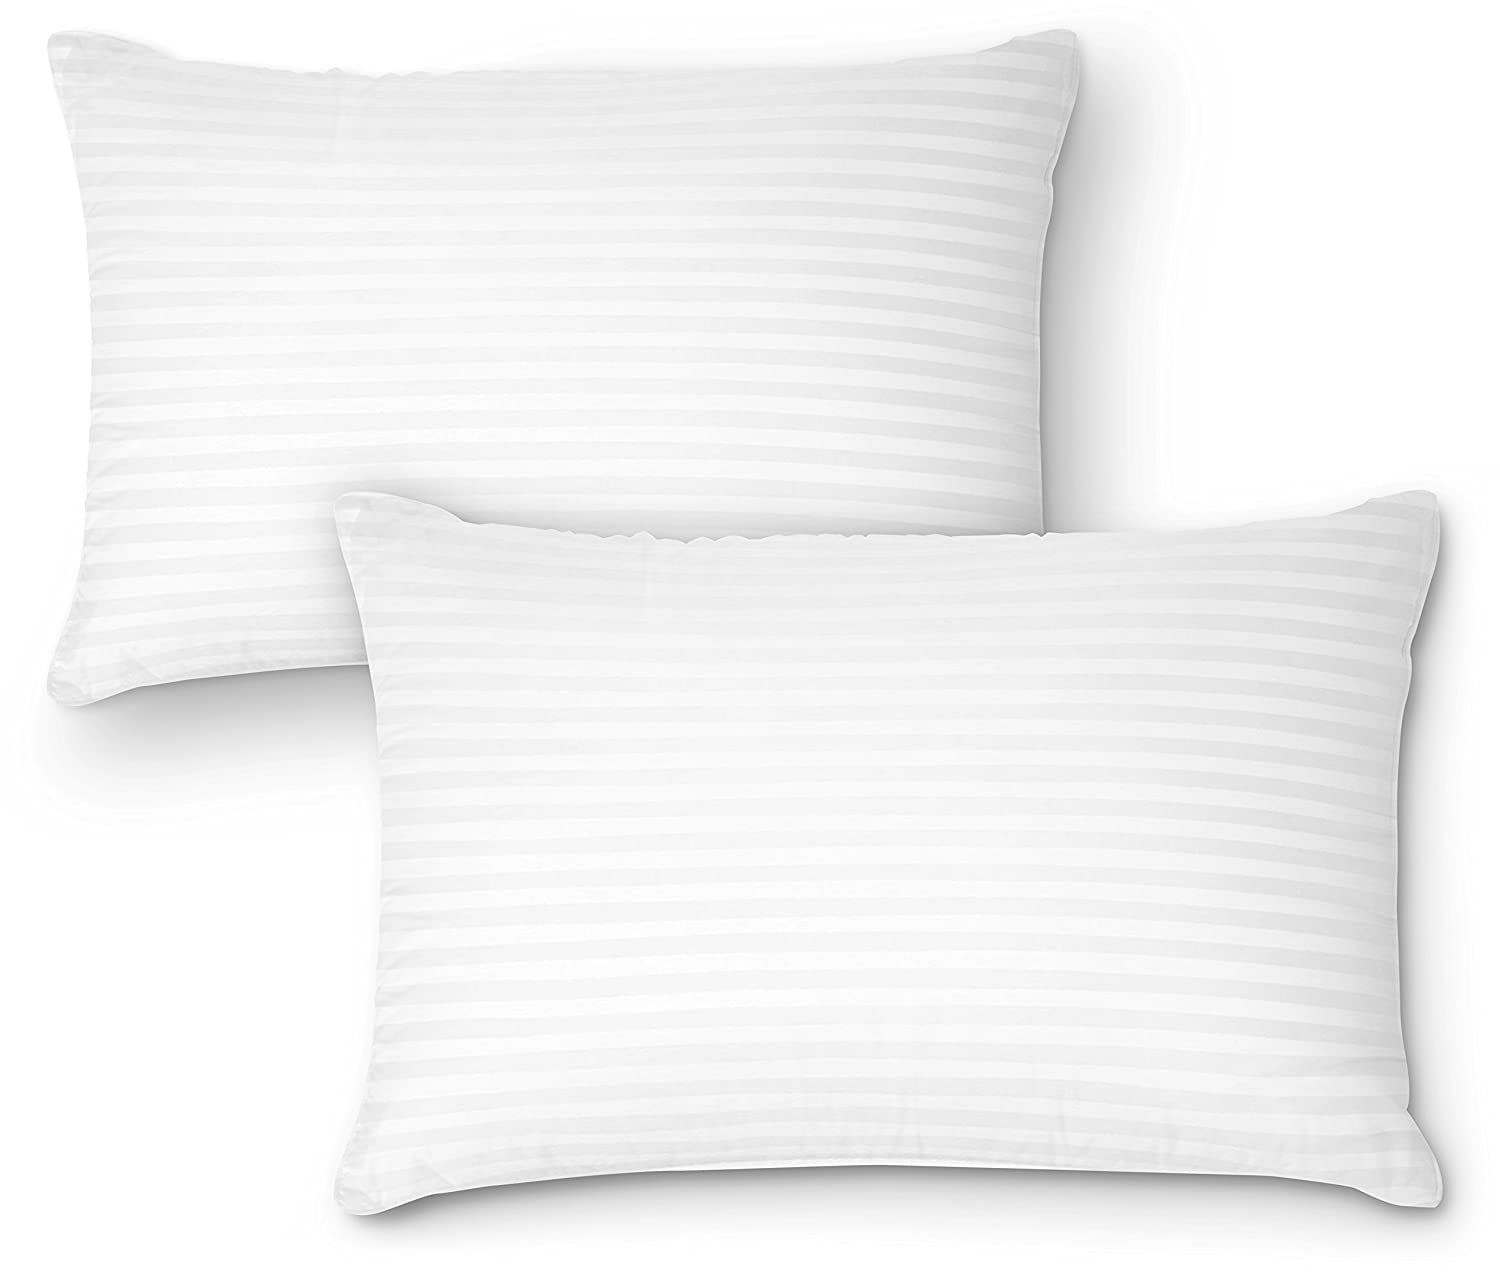 Side sleepers will find their next pillow on this list of pillows. Each pillow will offer you the right amount of support while you sleep on your side.